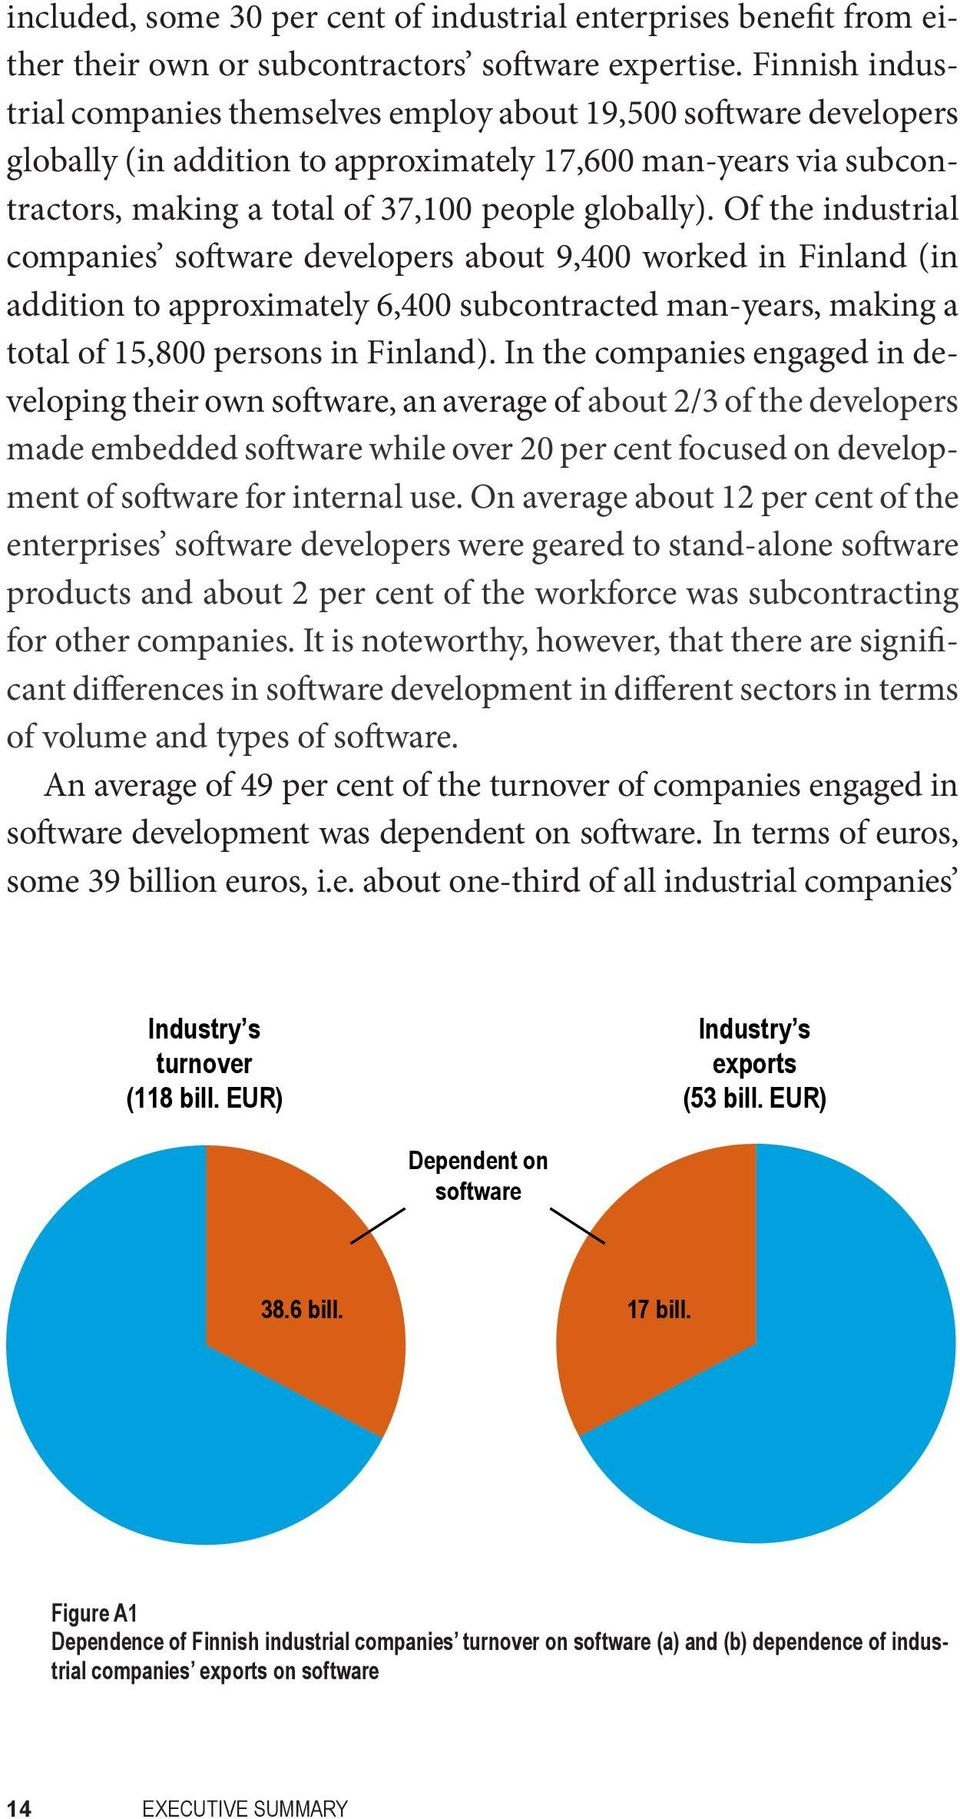 Of the industrial companies software developers about 9,400 worked in Finland (in addition to approximately 6,400 subcontracted man-years, making a total of 15,800 persons in Finland).